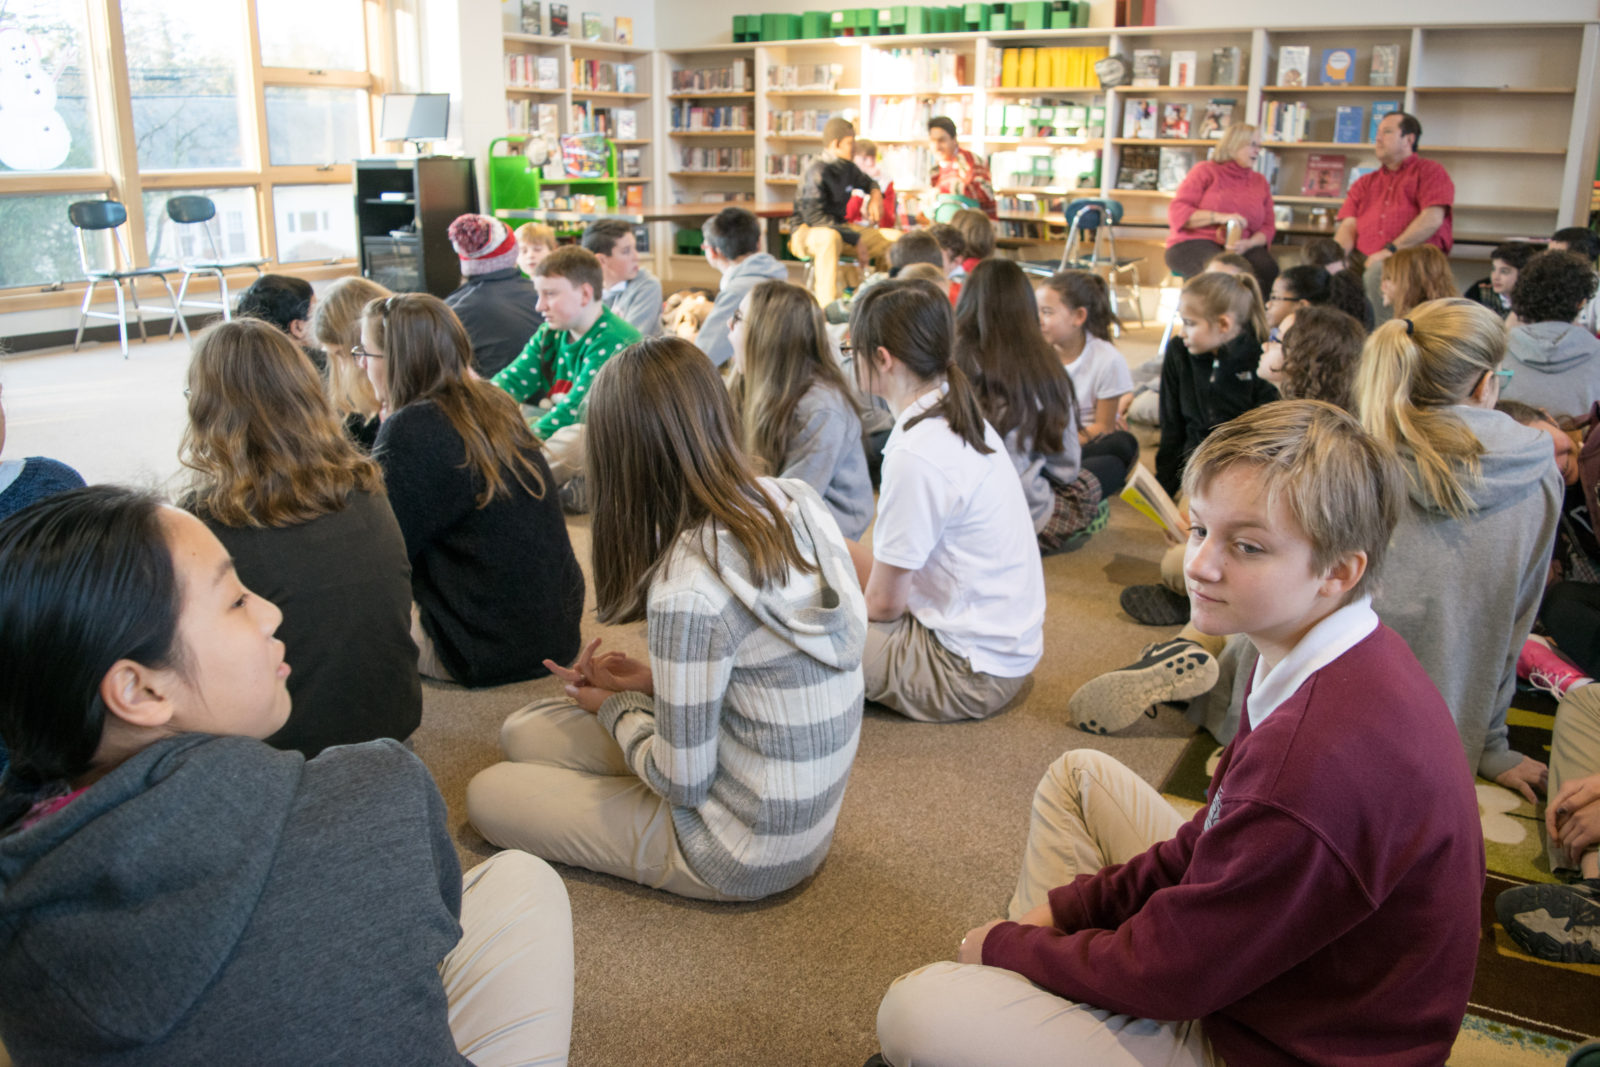 The Middle School is sitting and talking in the library before morning meeting starts.